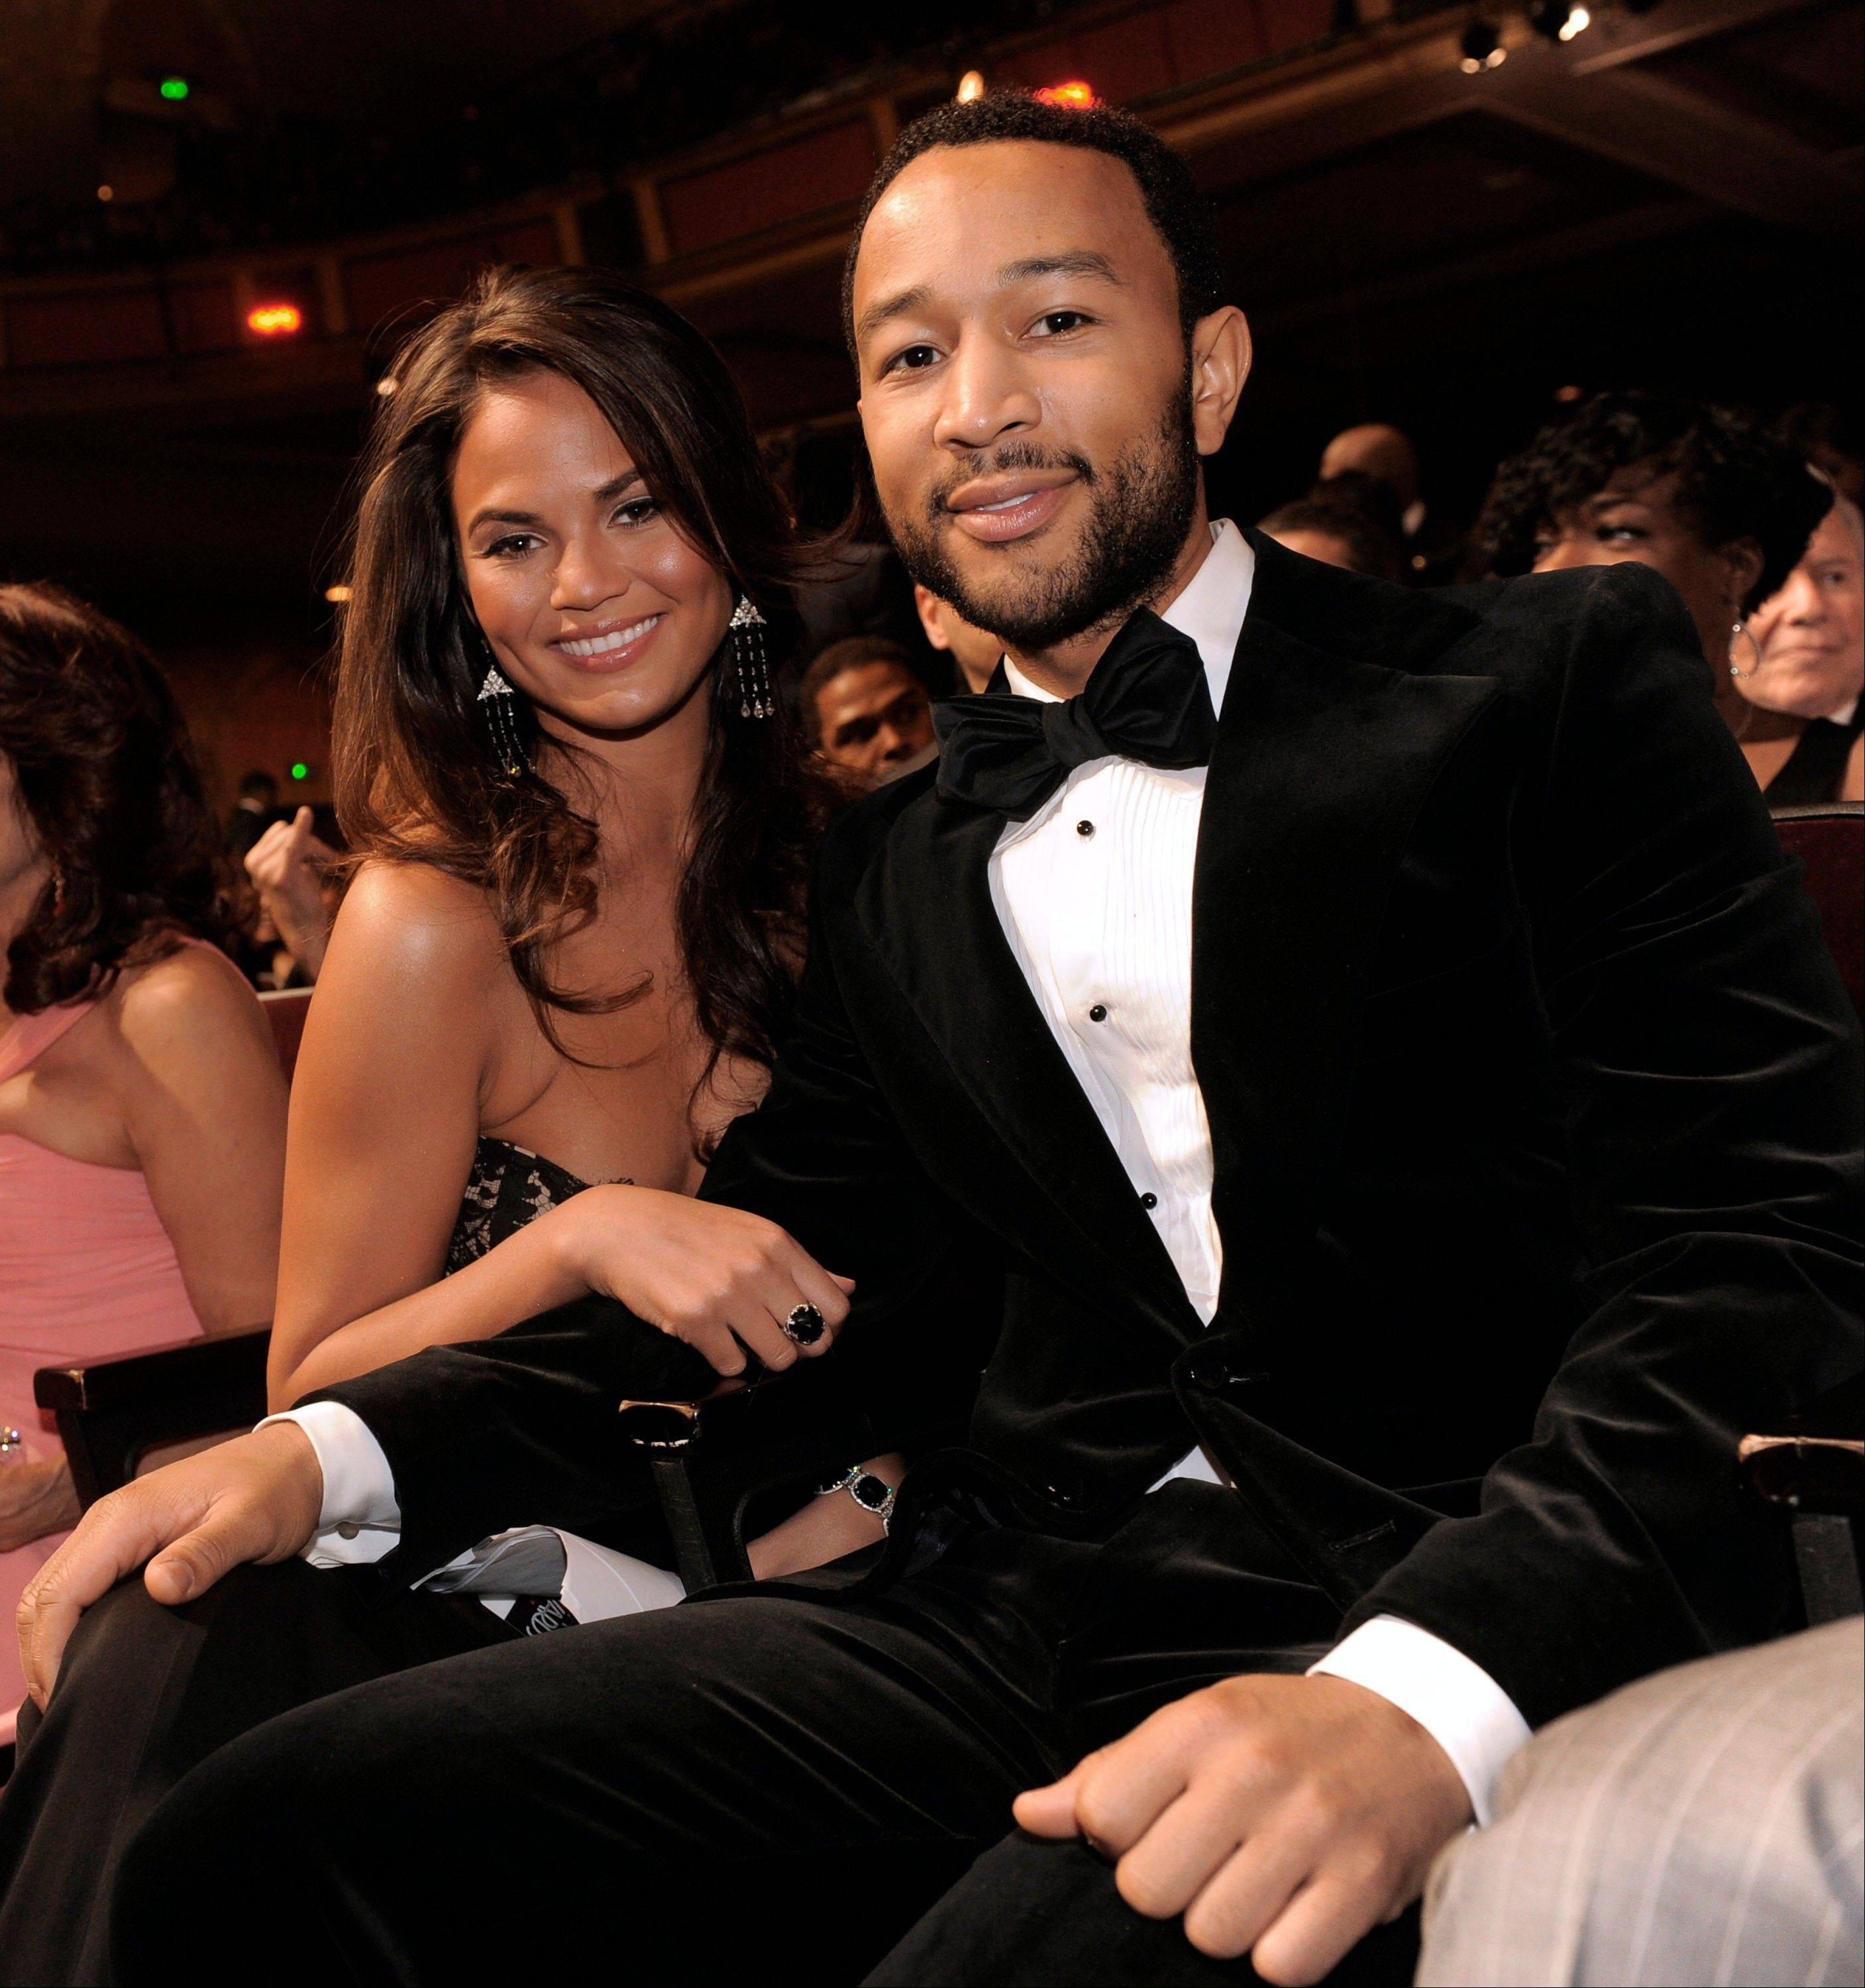 This Feb. 26, 2010 file photo shows John Legend, right, and Christine Teigen at the 41st NAACP Image Awards in Los Angeles. Legend is officially off the market. The R&B crooner�s representative said Legend married Teigen on Saturday at the Villa Pizzo in Lake Como, Italy. Legend, 34, and Teigen, 27, got engaged in 2011.